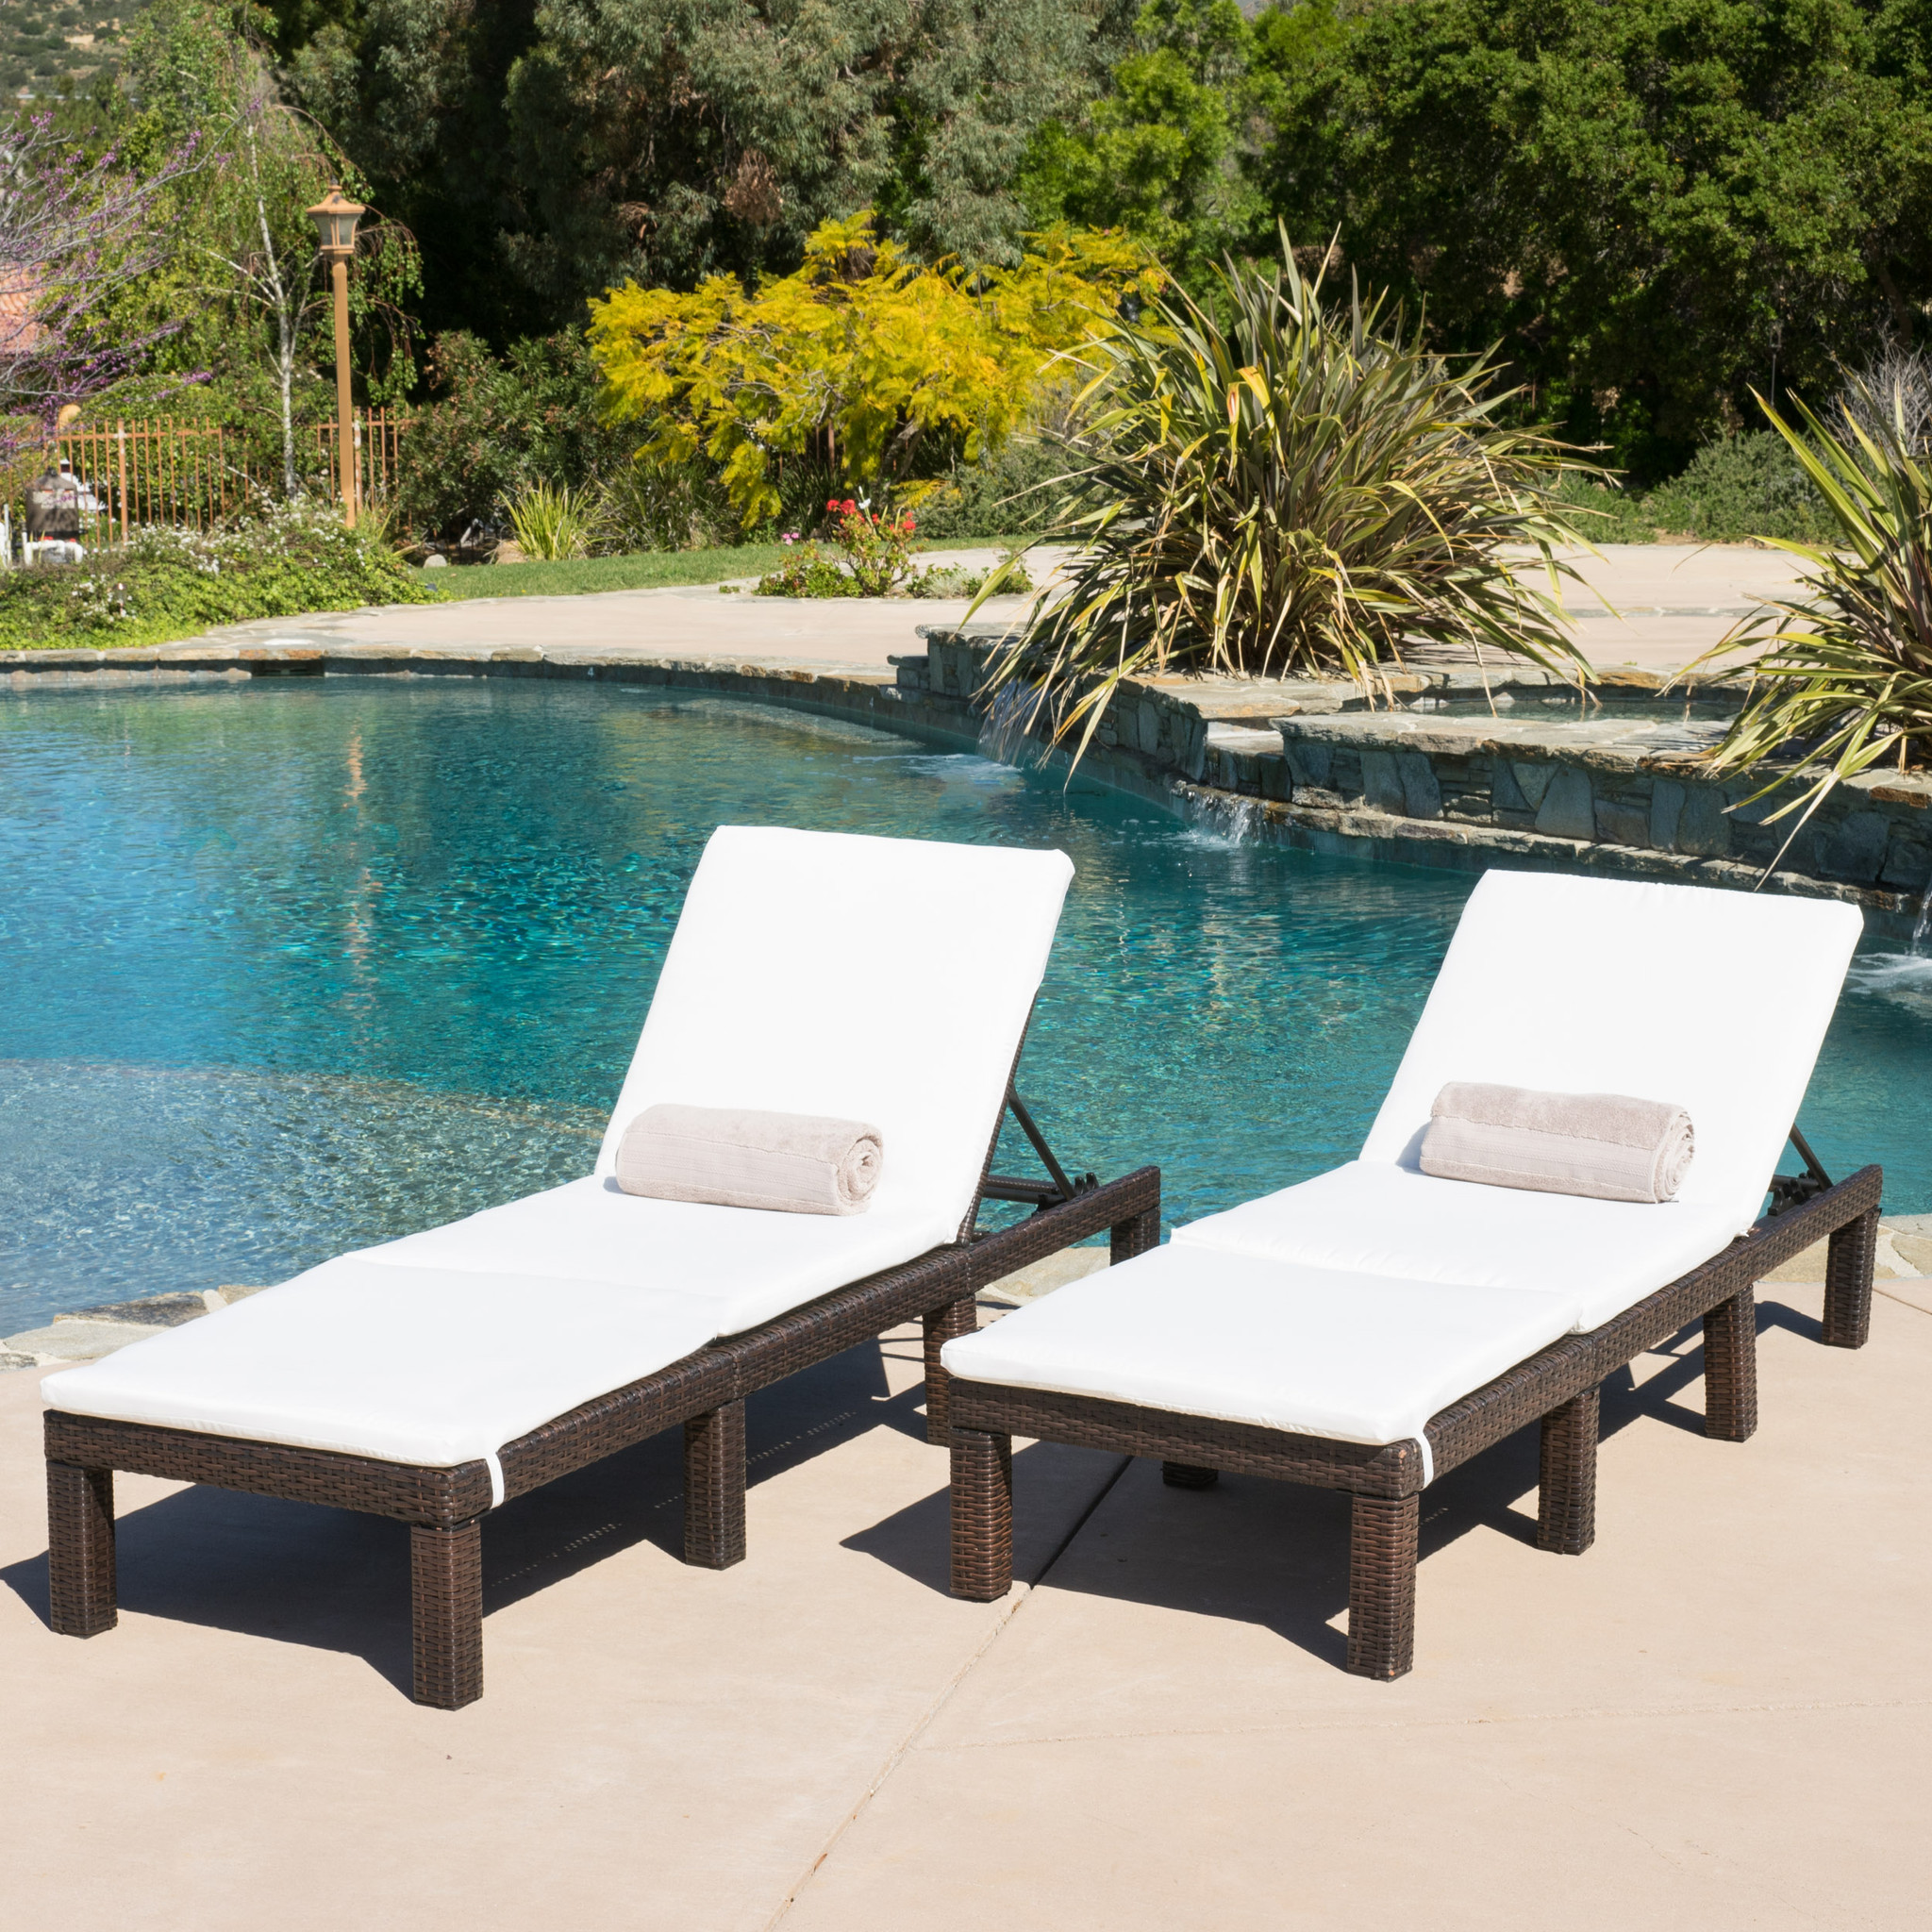 Aspen Outdoor Wicker Adjustable Chaise Lounges w  Cushions (Set of 2) by NFusion